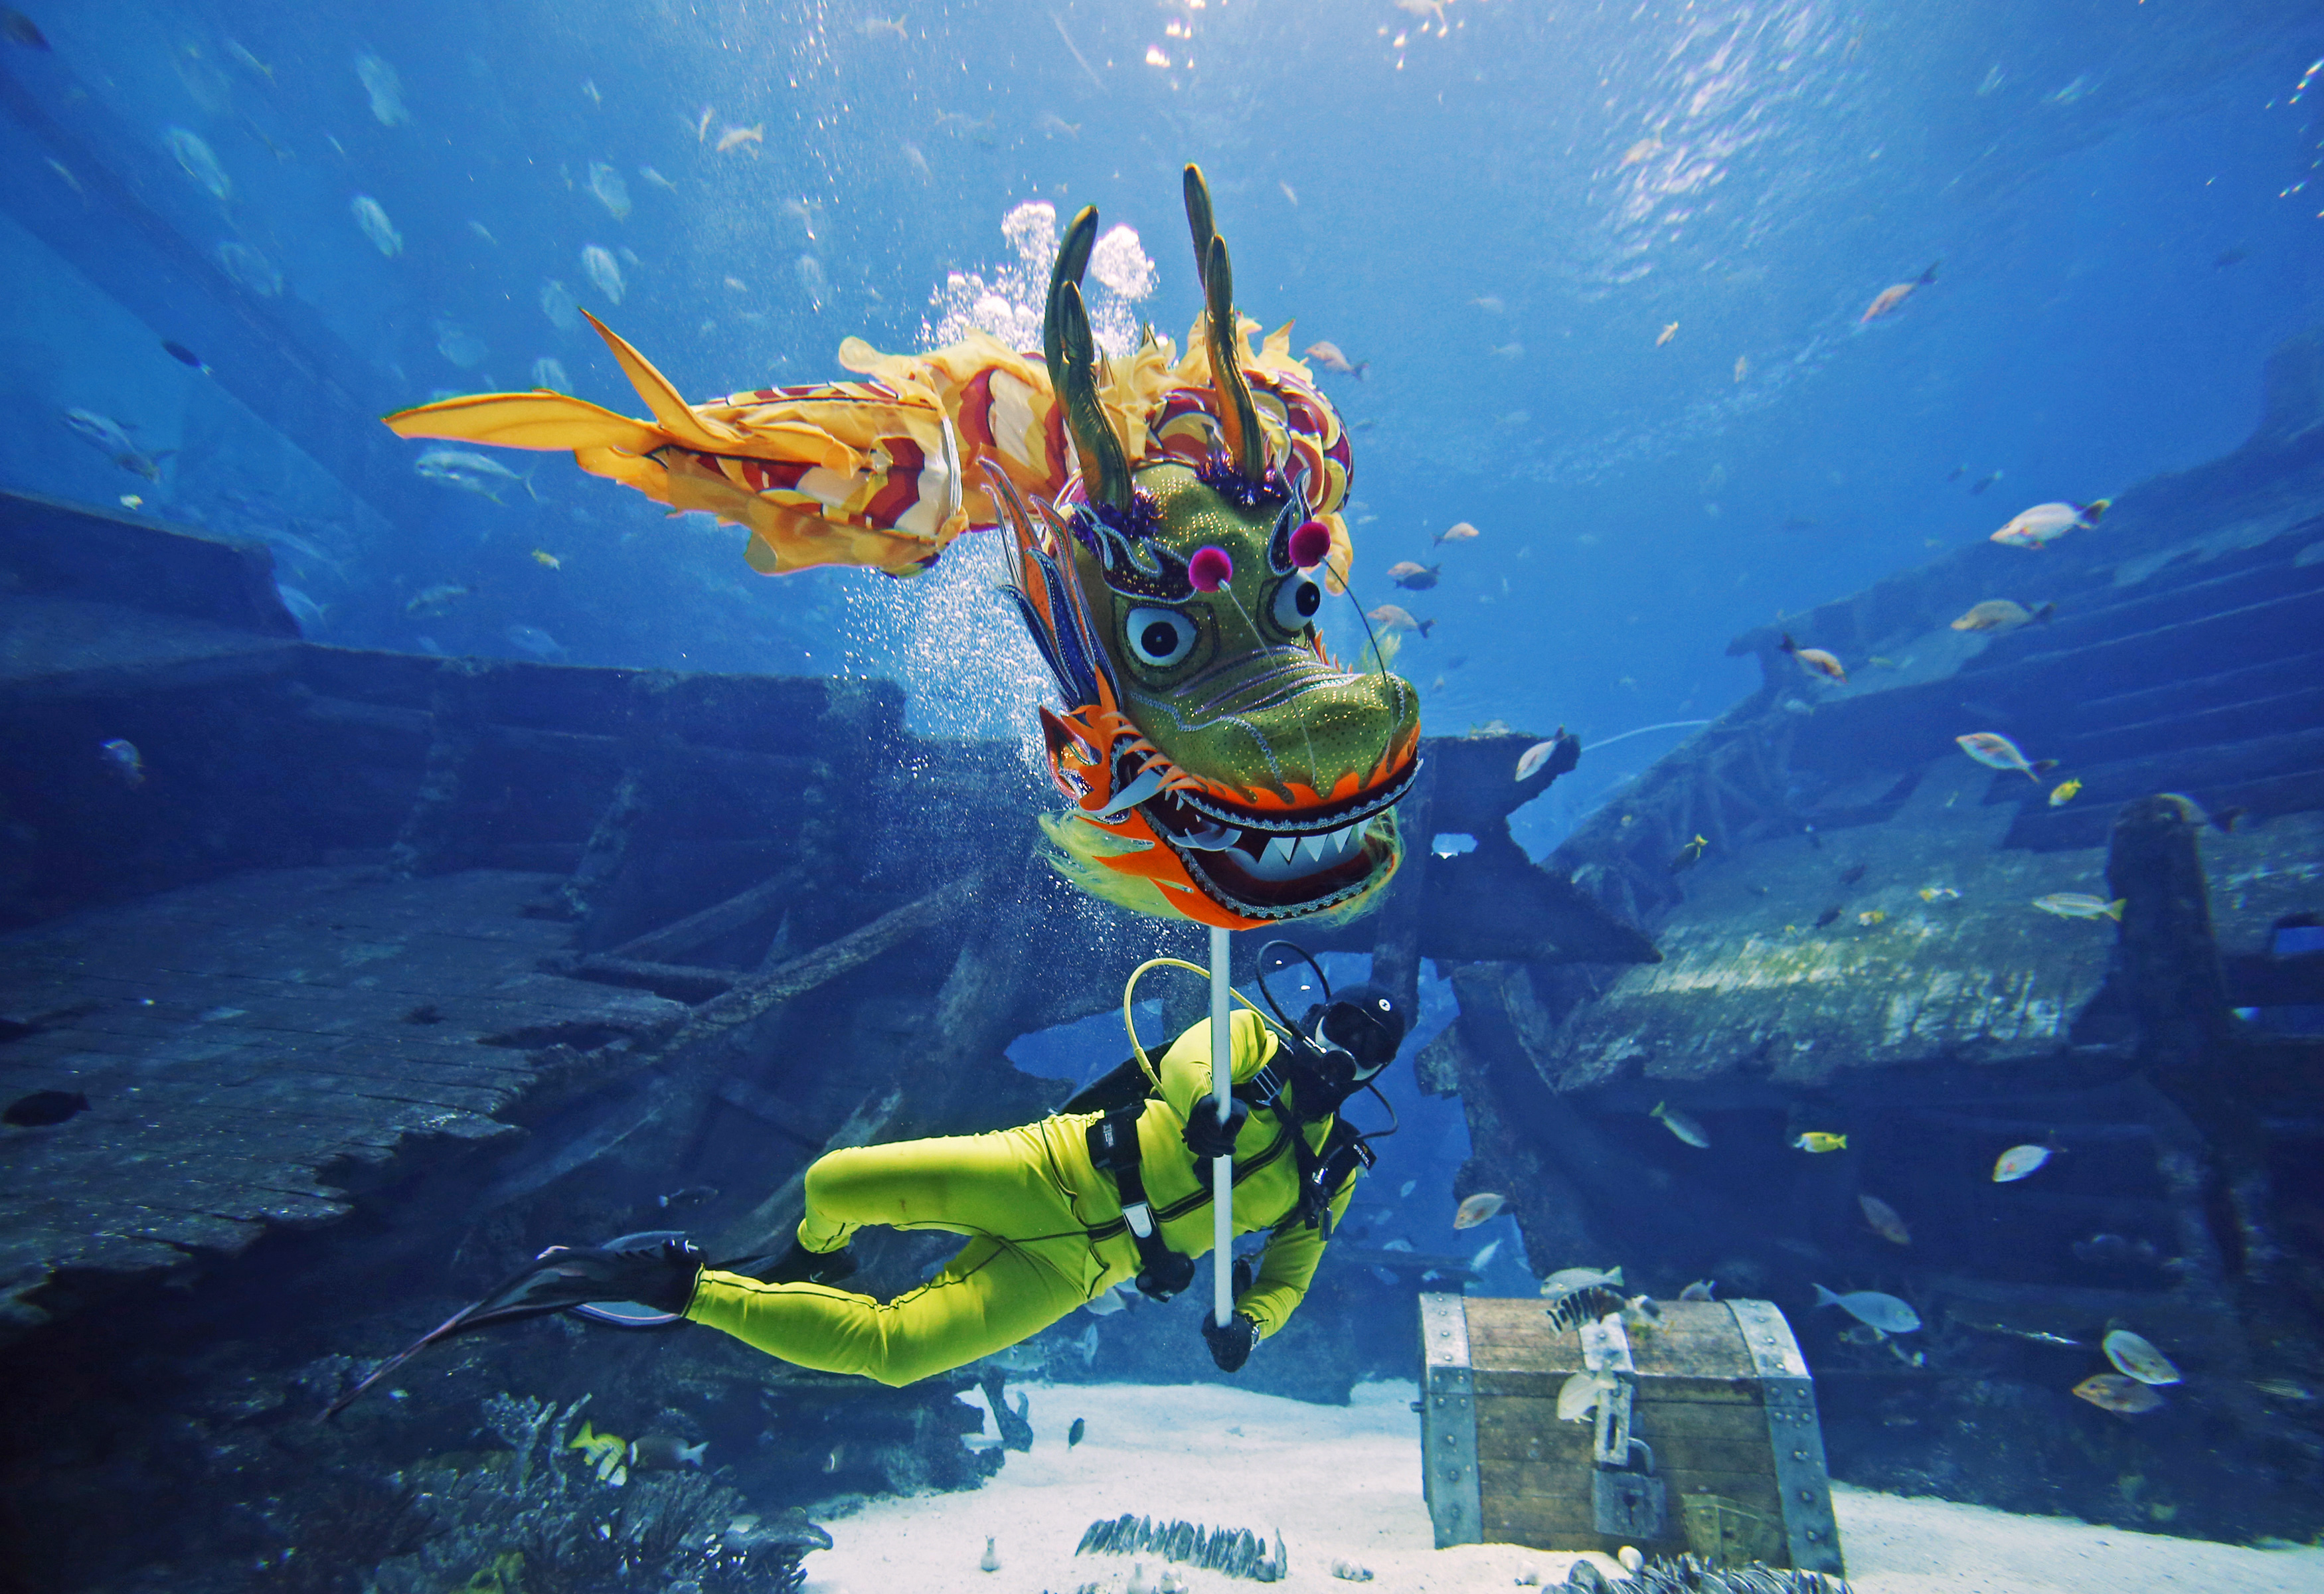 A diver performs a dragon dance at the Shipwreck Habitat of the S.E.A. Aquarium as part of the festive Chinese New Year celebrations in Sentosa, Singapore February 14, 2015. Photo by Edgar Su/REUTERS.